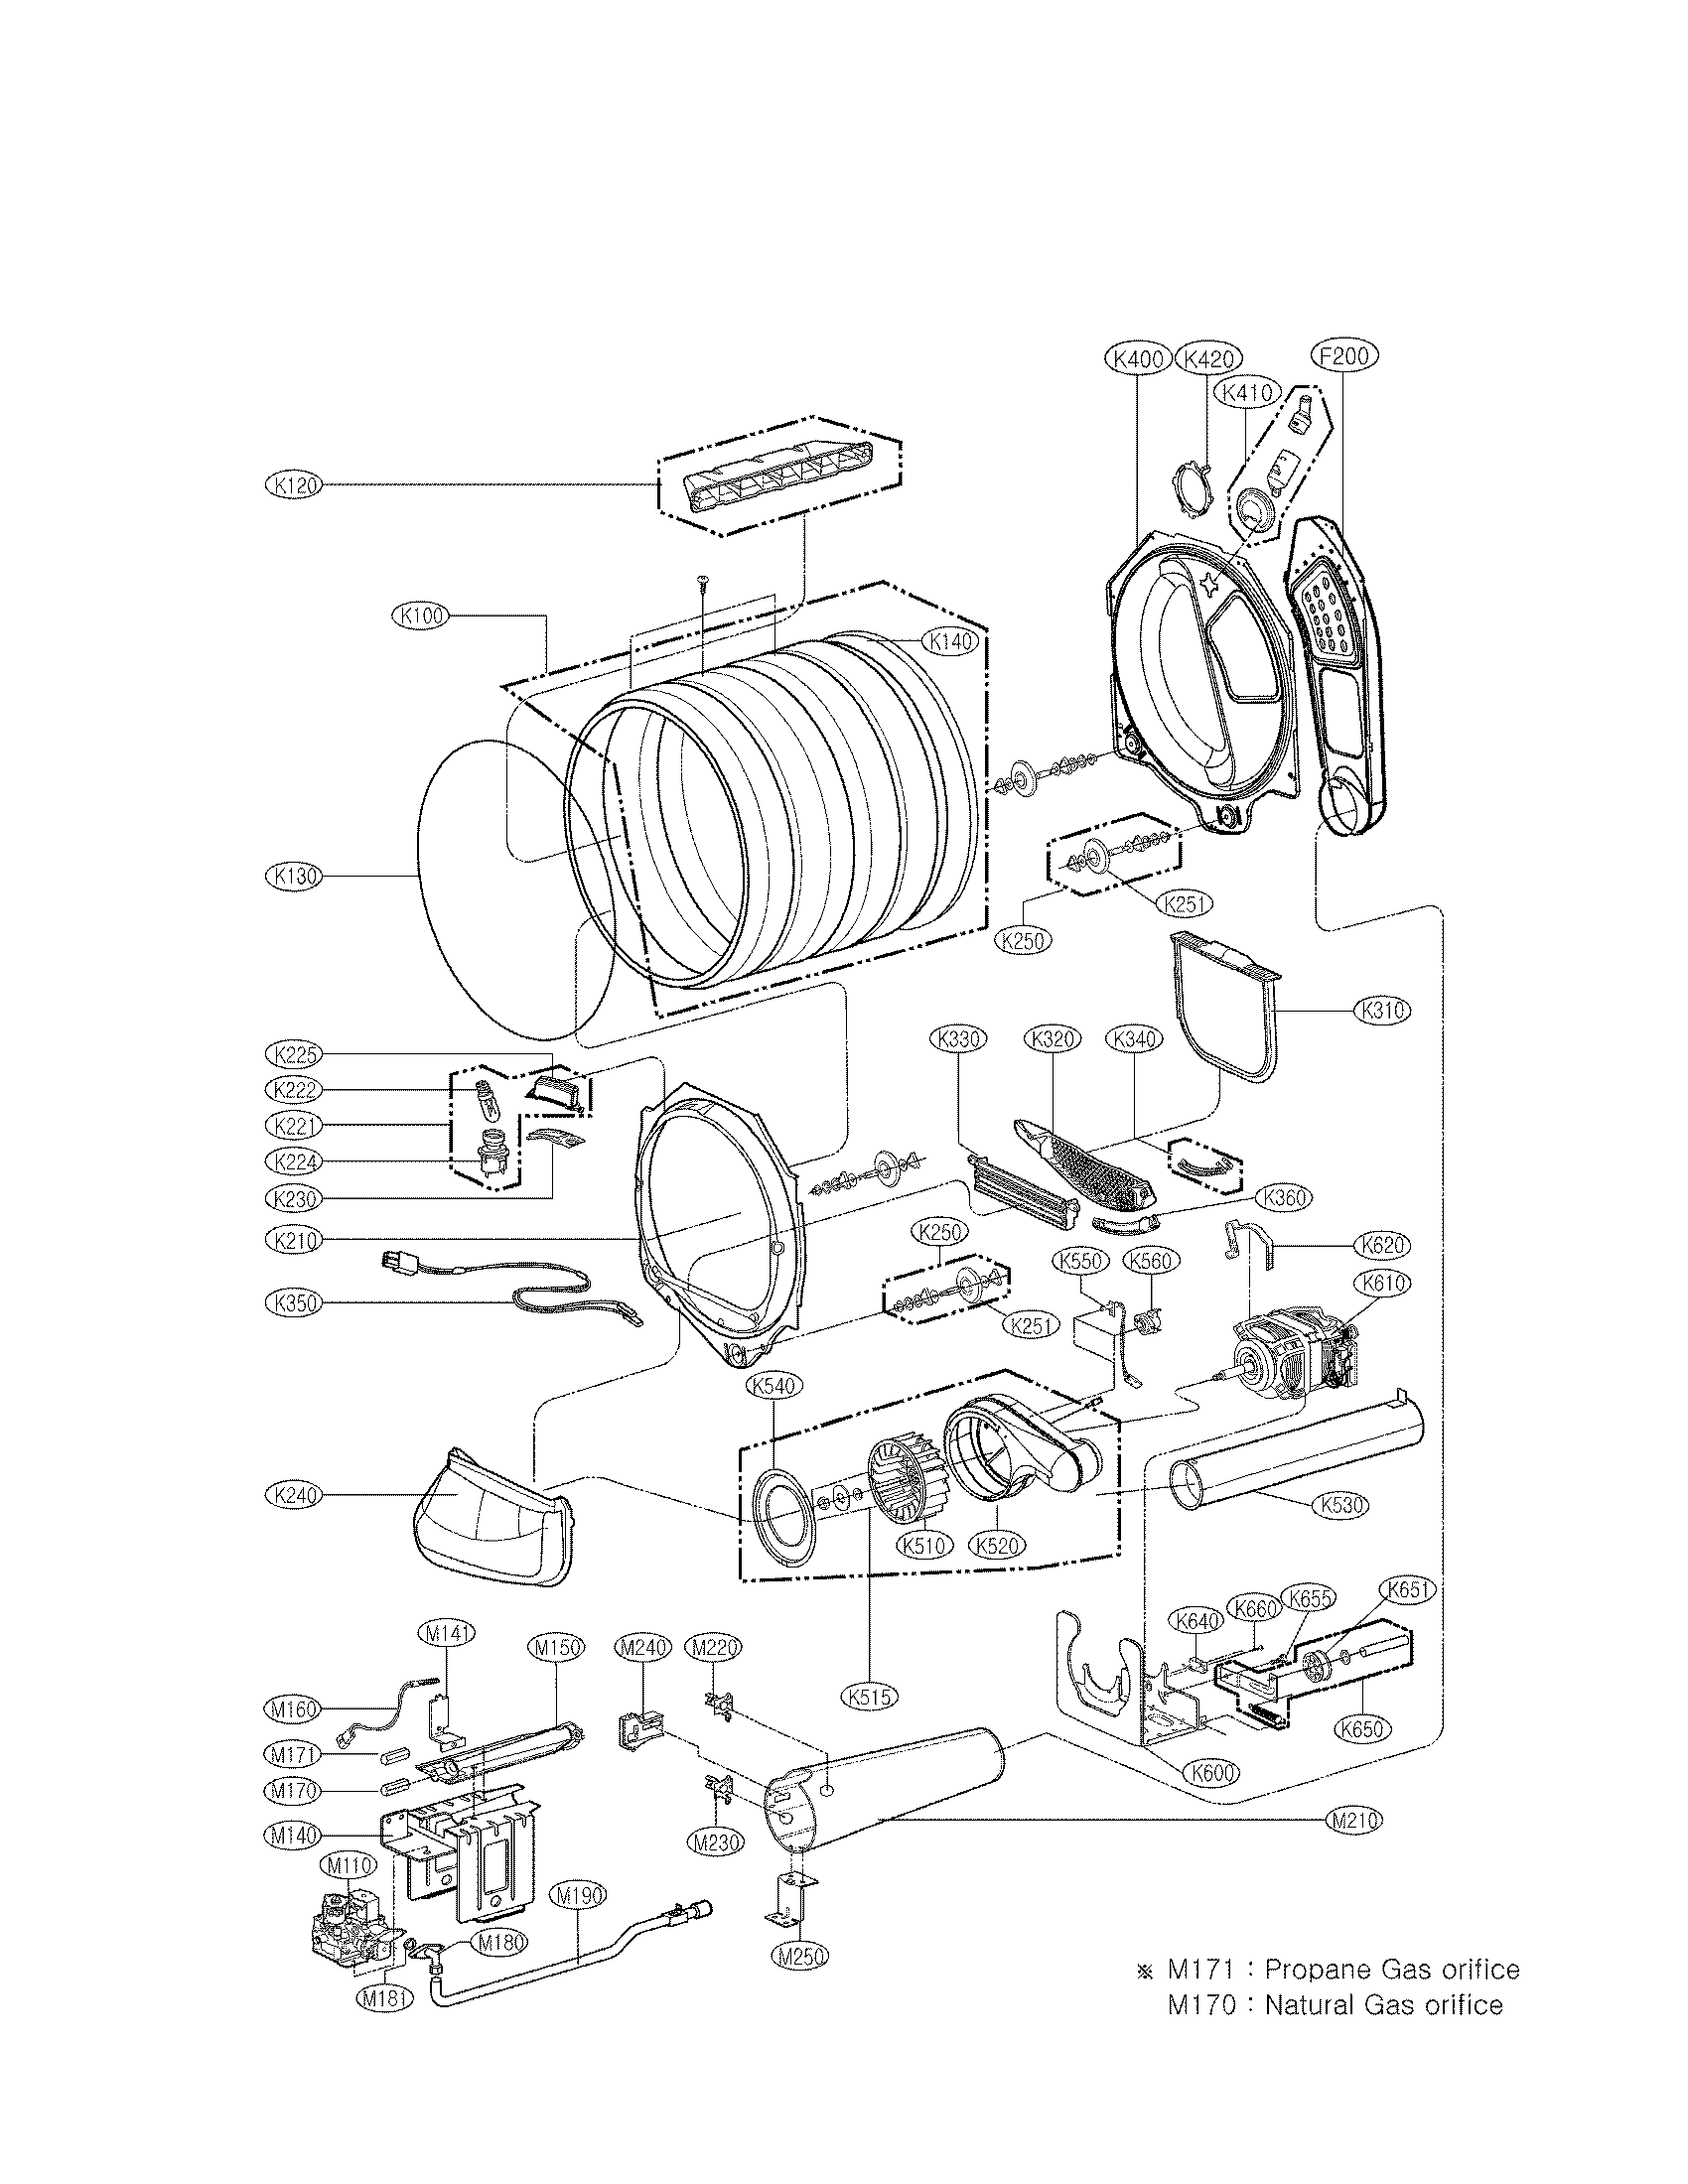 LG DLGX5171W drum and motor assembly part diagram